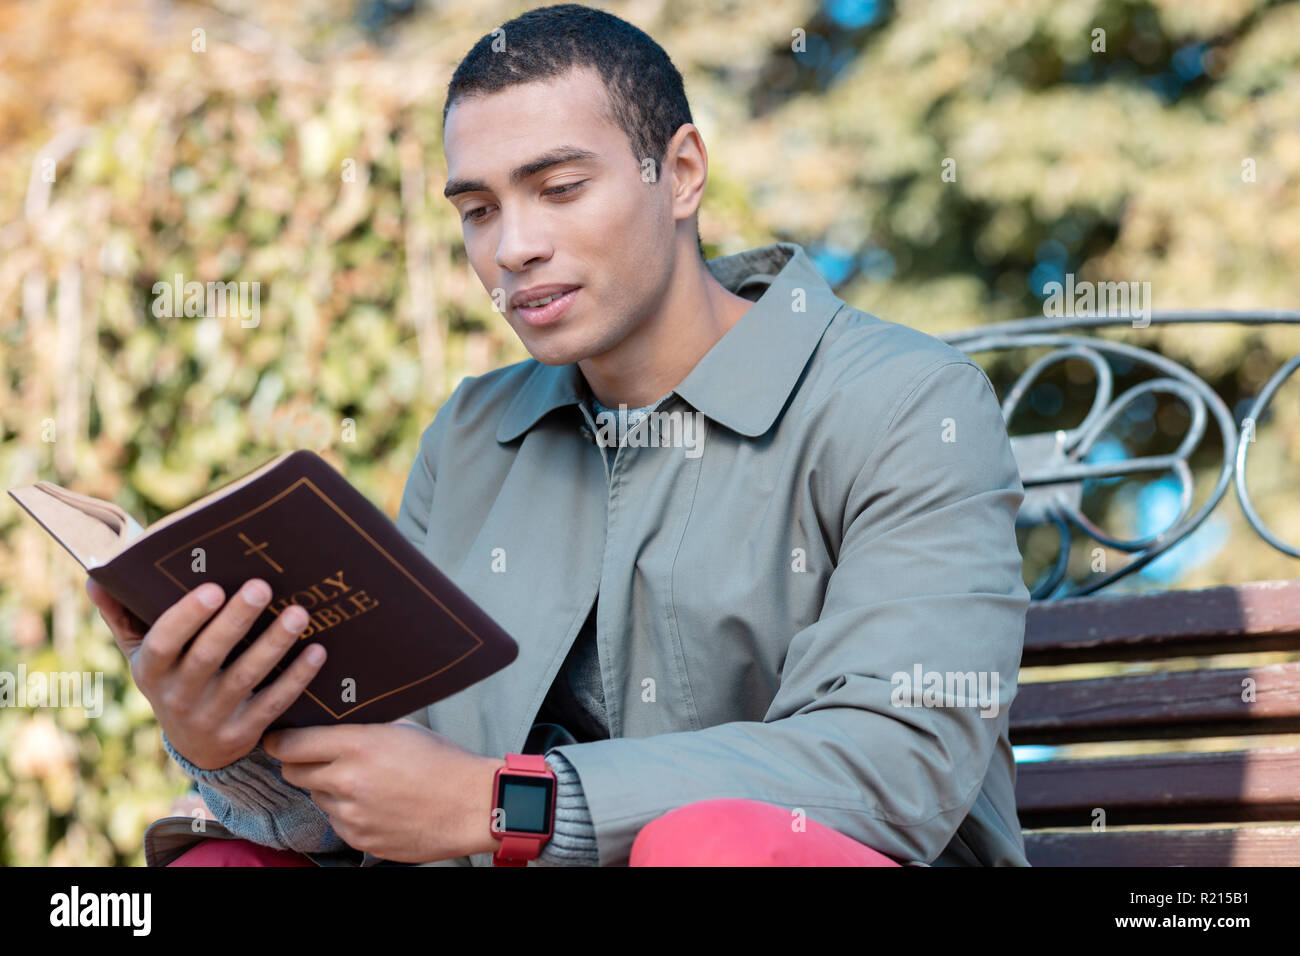 Concentrated religious man reading Bible in park - Stock Image